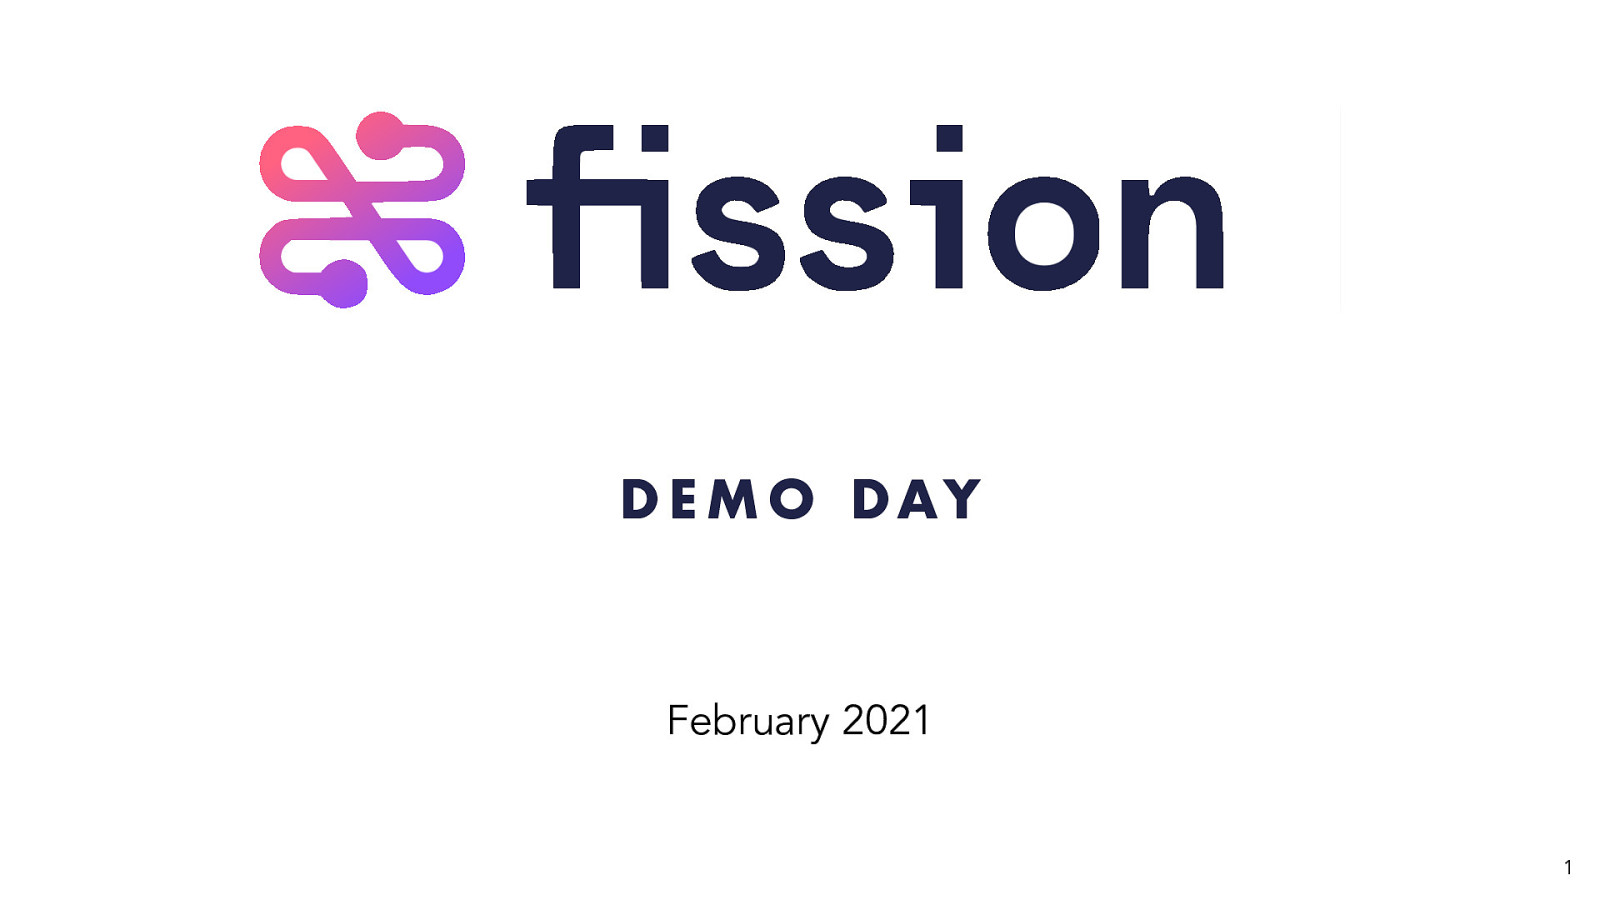 Fission Demo Day February 2021